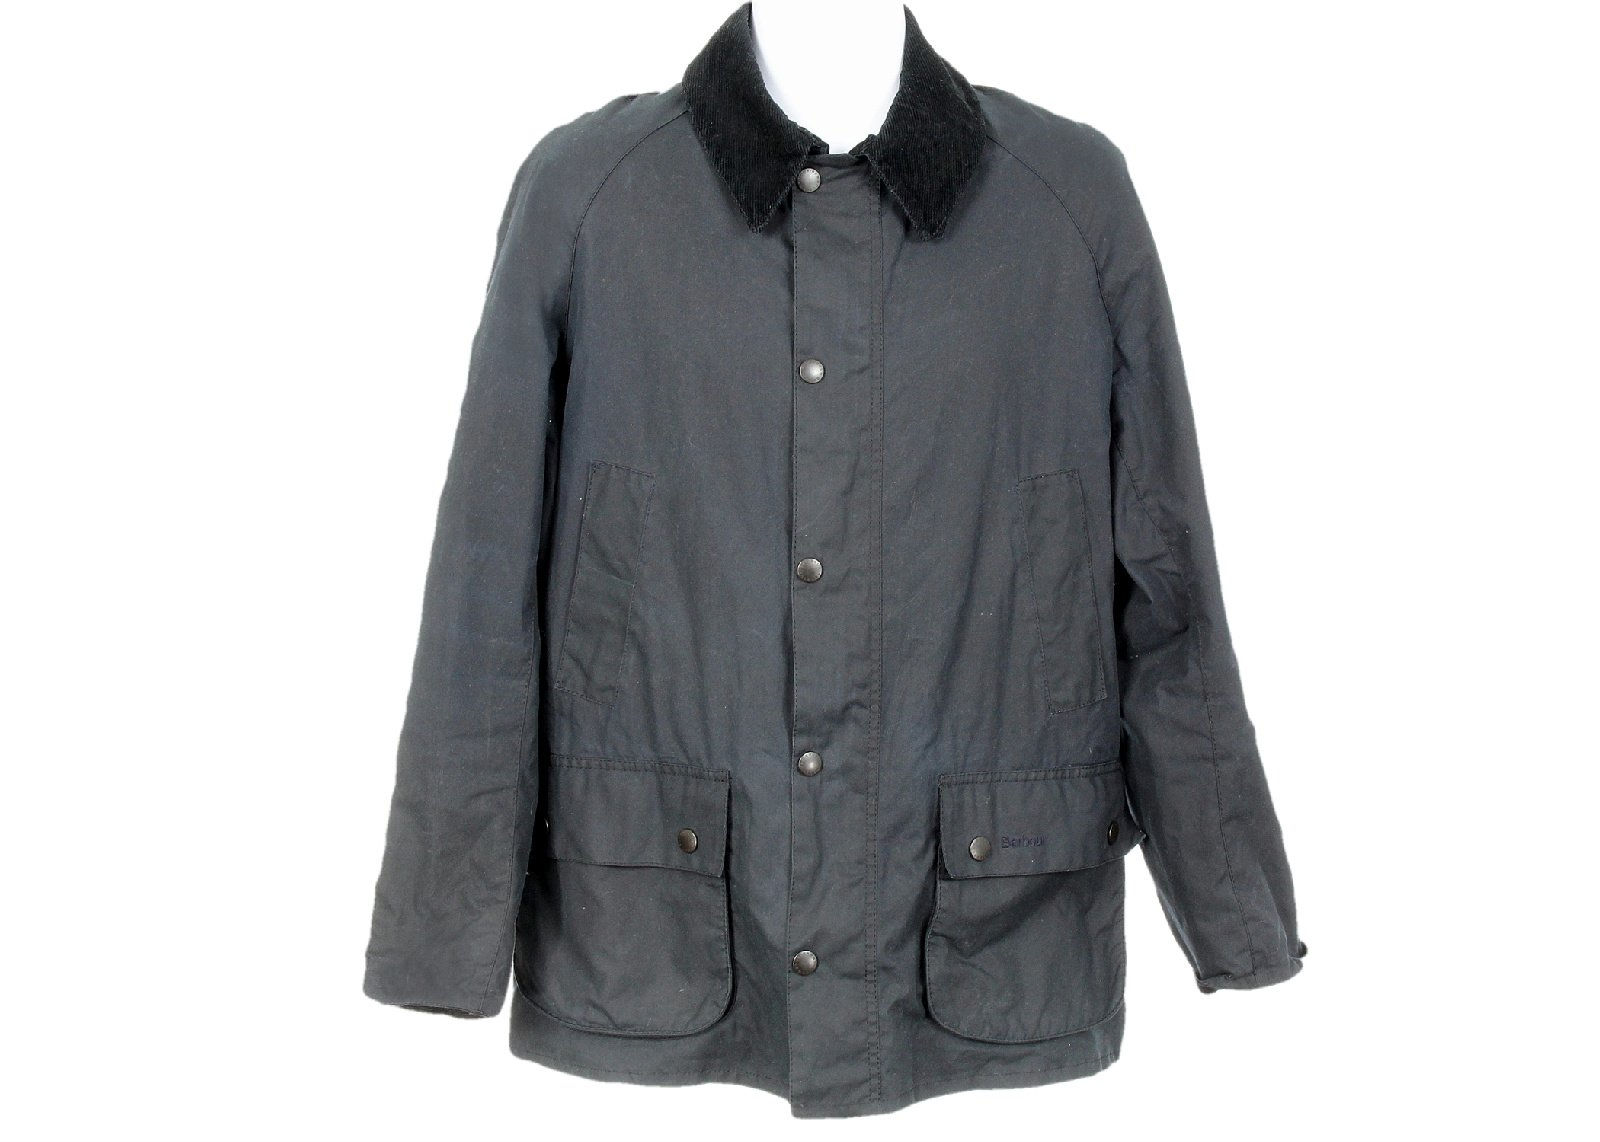 J Crew Crewcuts Kids' Barbour Bedale Jacket S 4/5 Yrs B1908 $249 Black Coat by Barbour for J Crew